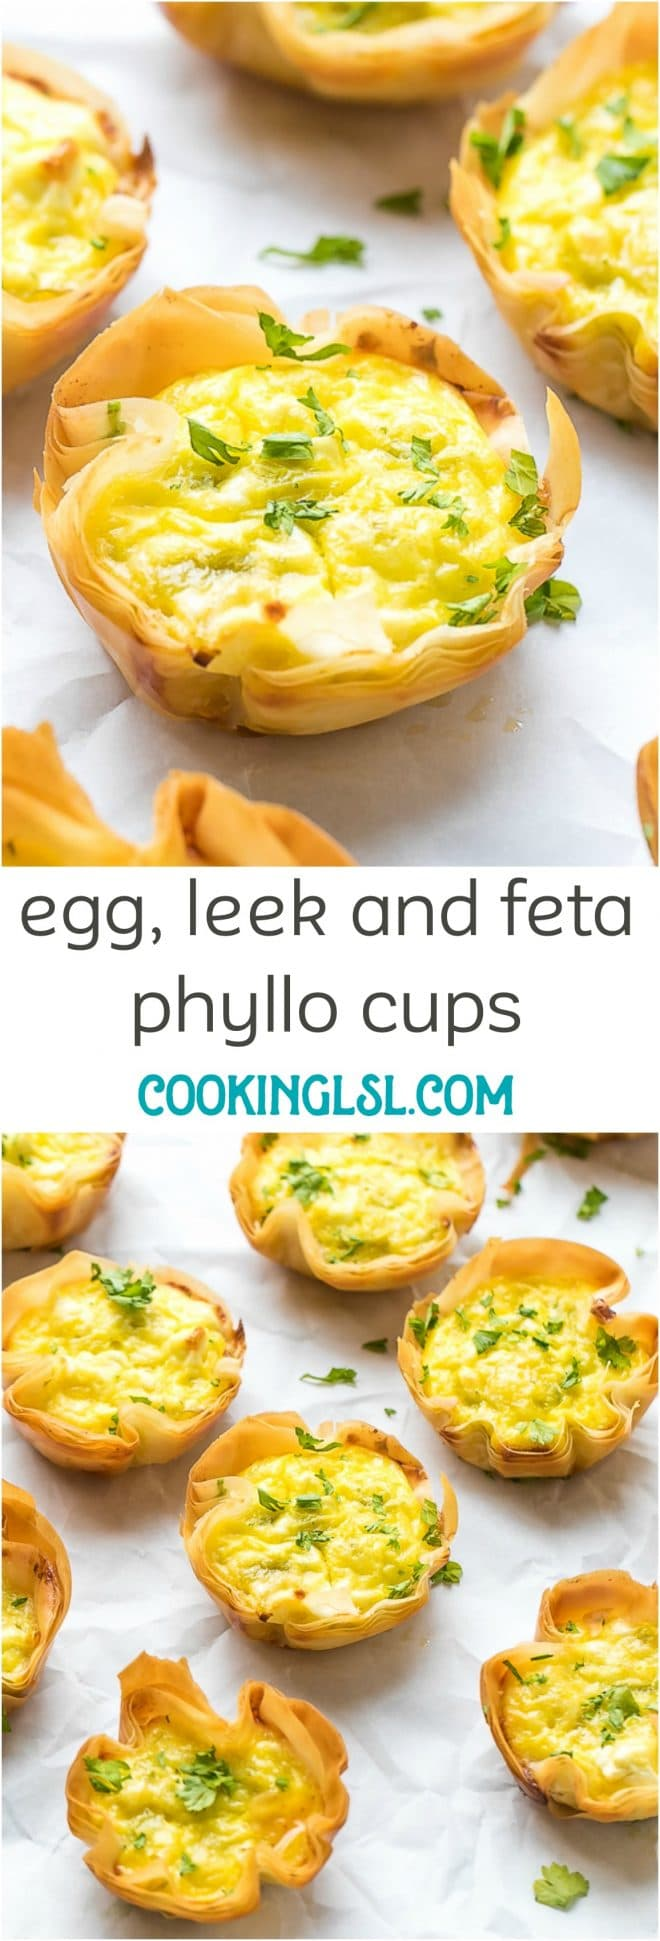 Egg, Leek and Feta Phyllo Cups Recipe. Perfect for breakfast, snack or an appetizer.